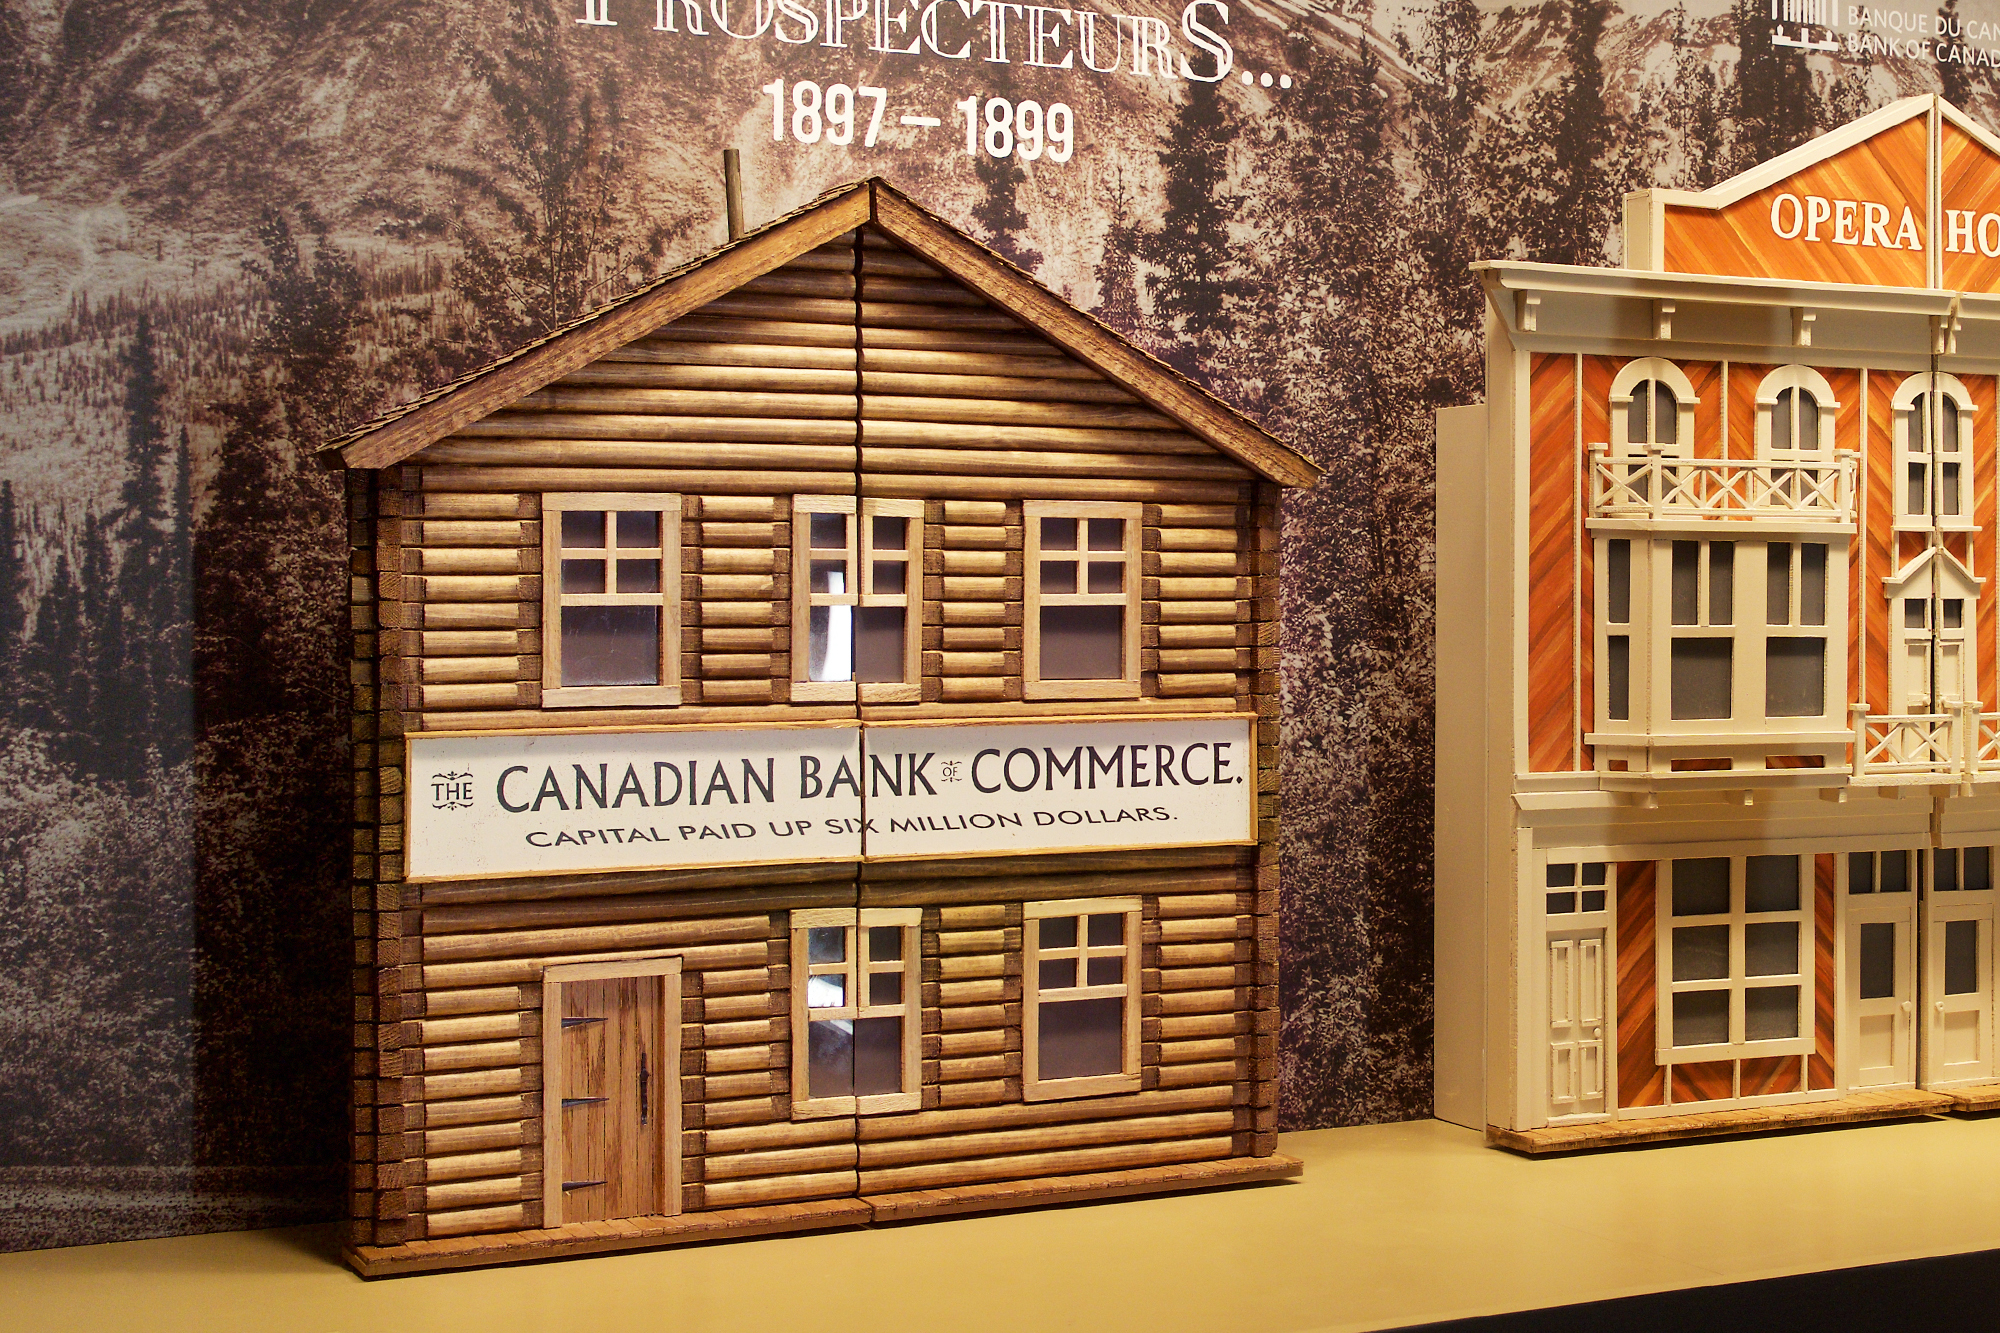 exhibition window with diorama of frontier street